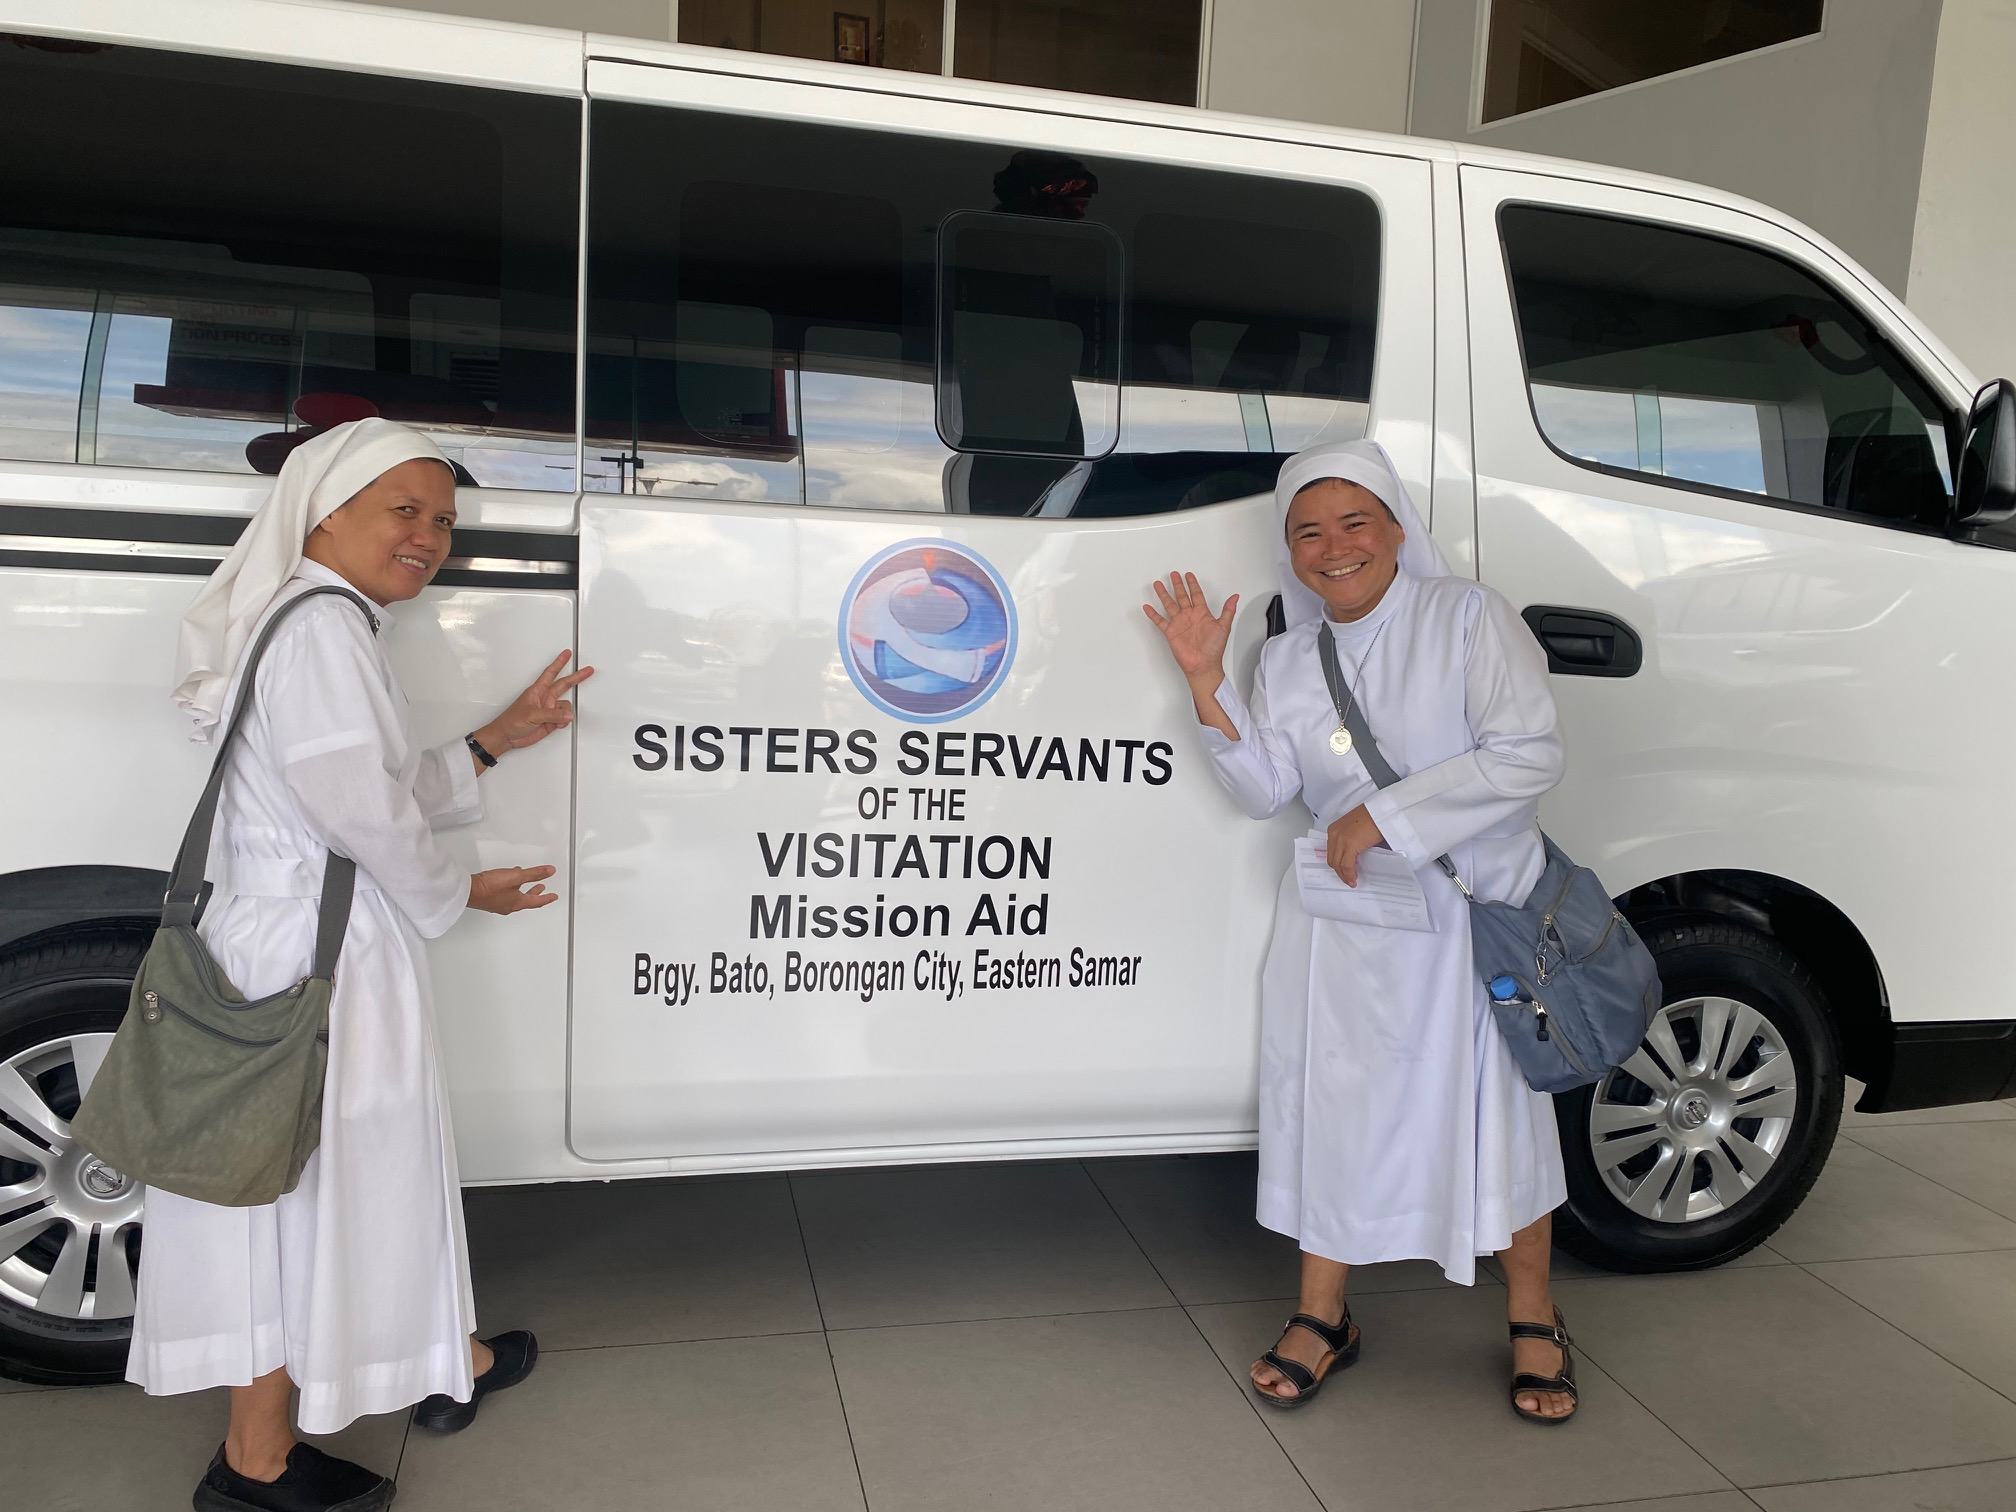 SSV Van Sr. Ruby and Sr. Tonette